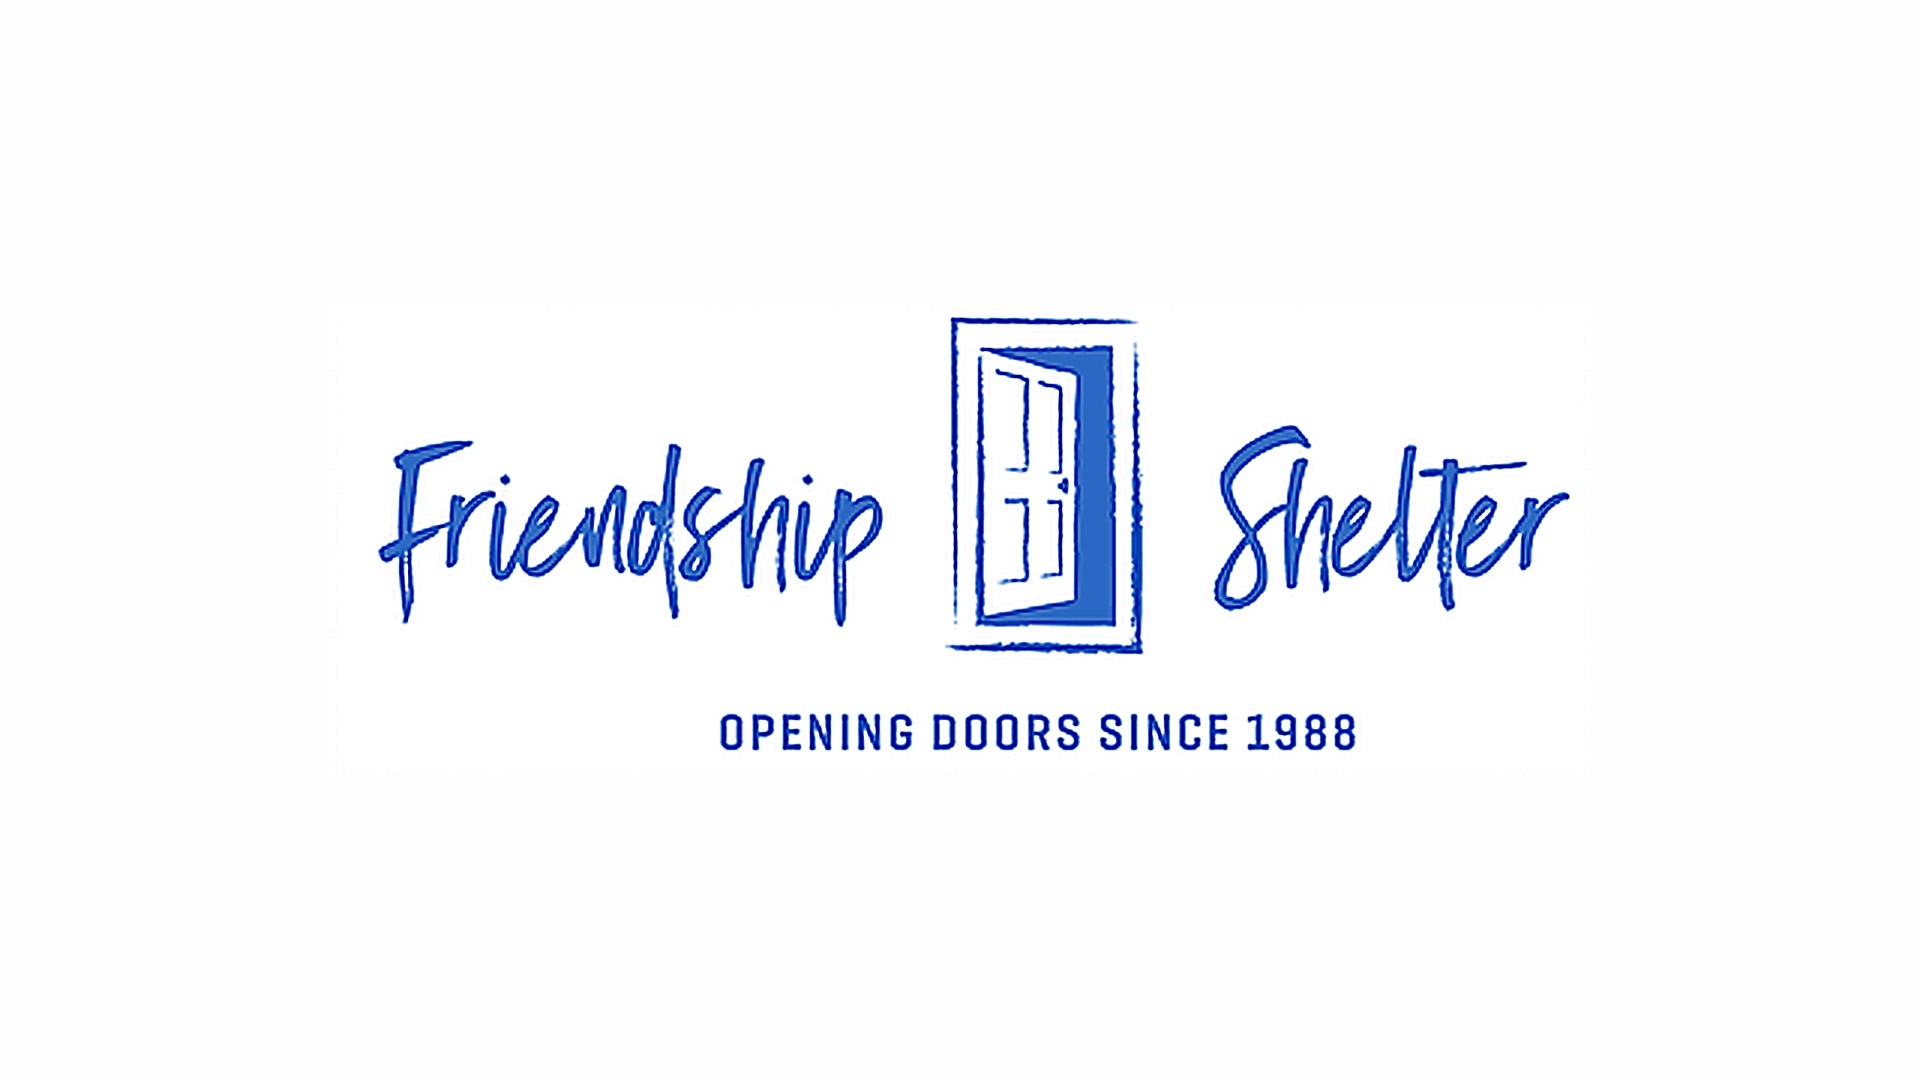 The Friendship Shelter